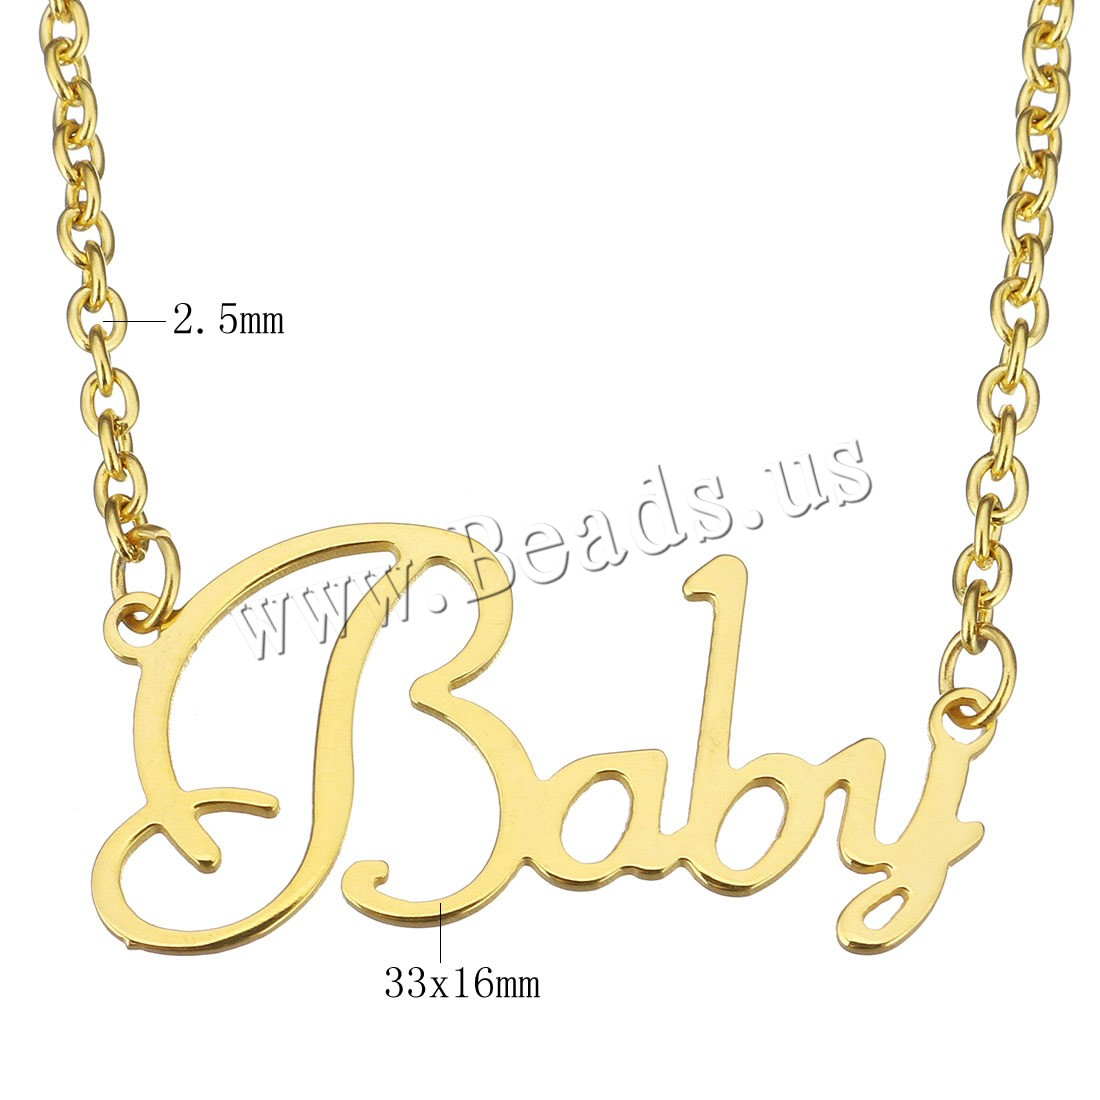 Buy Stainless Steel Jewelry Necklace Letter word baby gold color plated oval chain & woman 33x16mm 2.5mm Sold Per Approx 15 Inch Strand